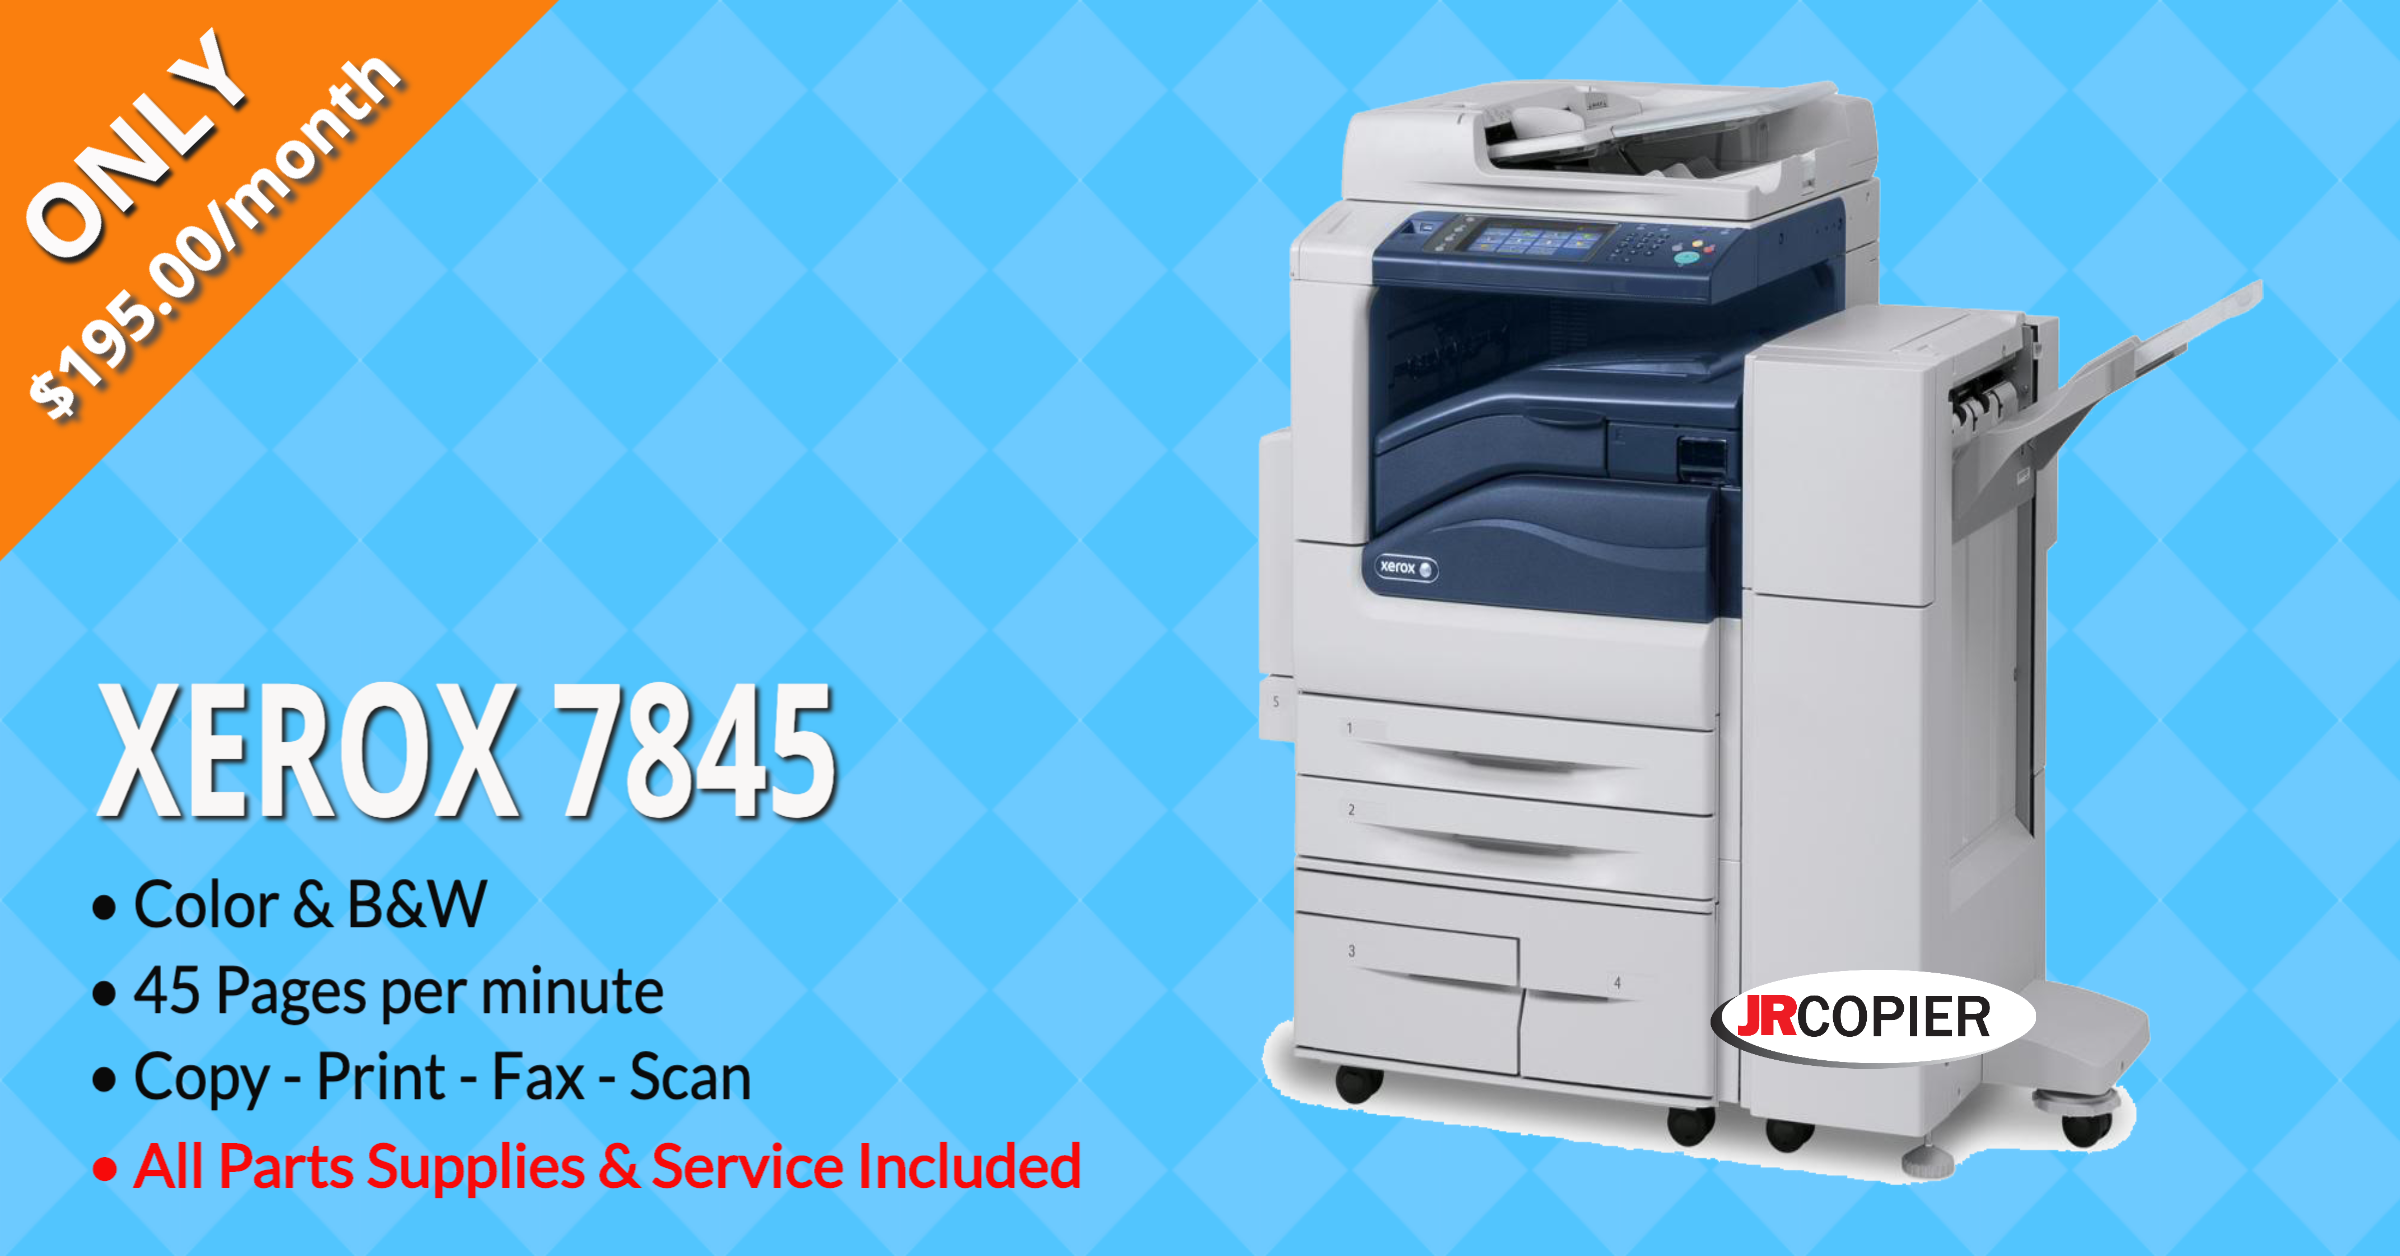 Copy Machine Sales 35903, 35905, 35907